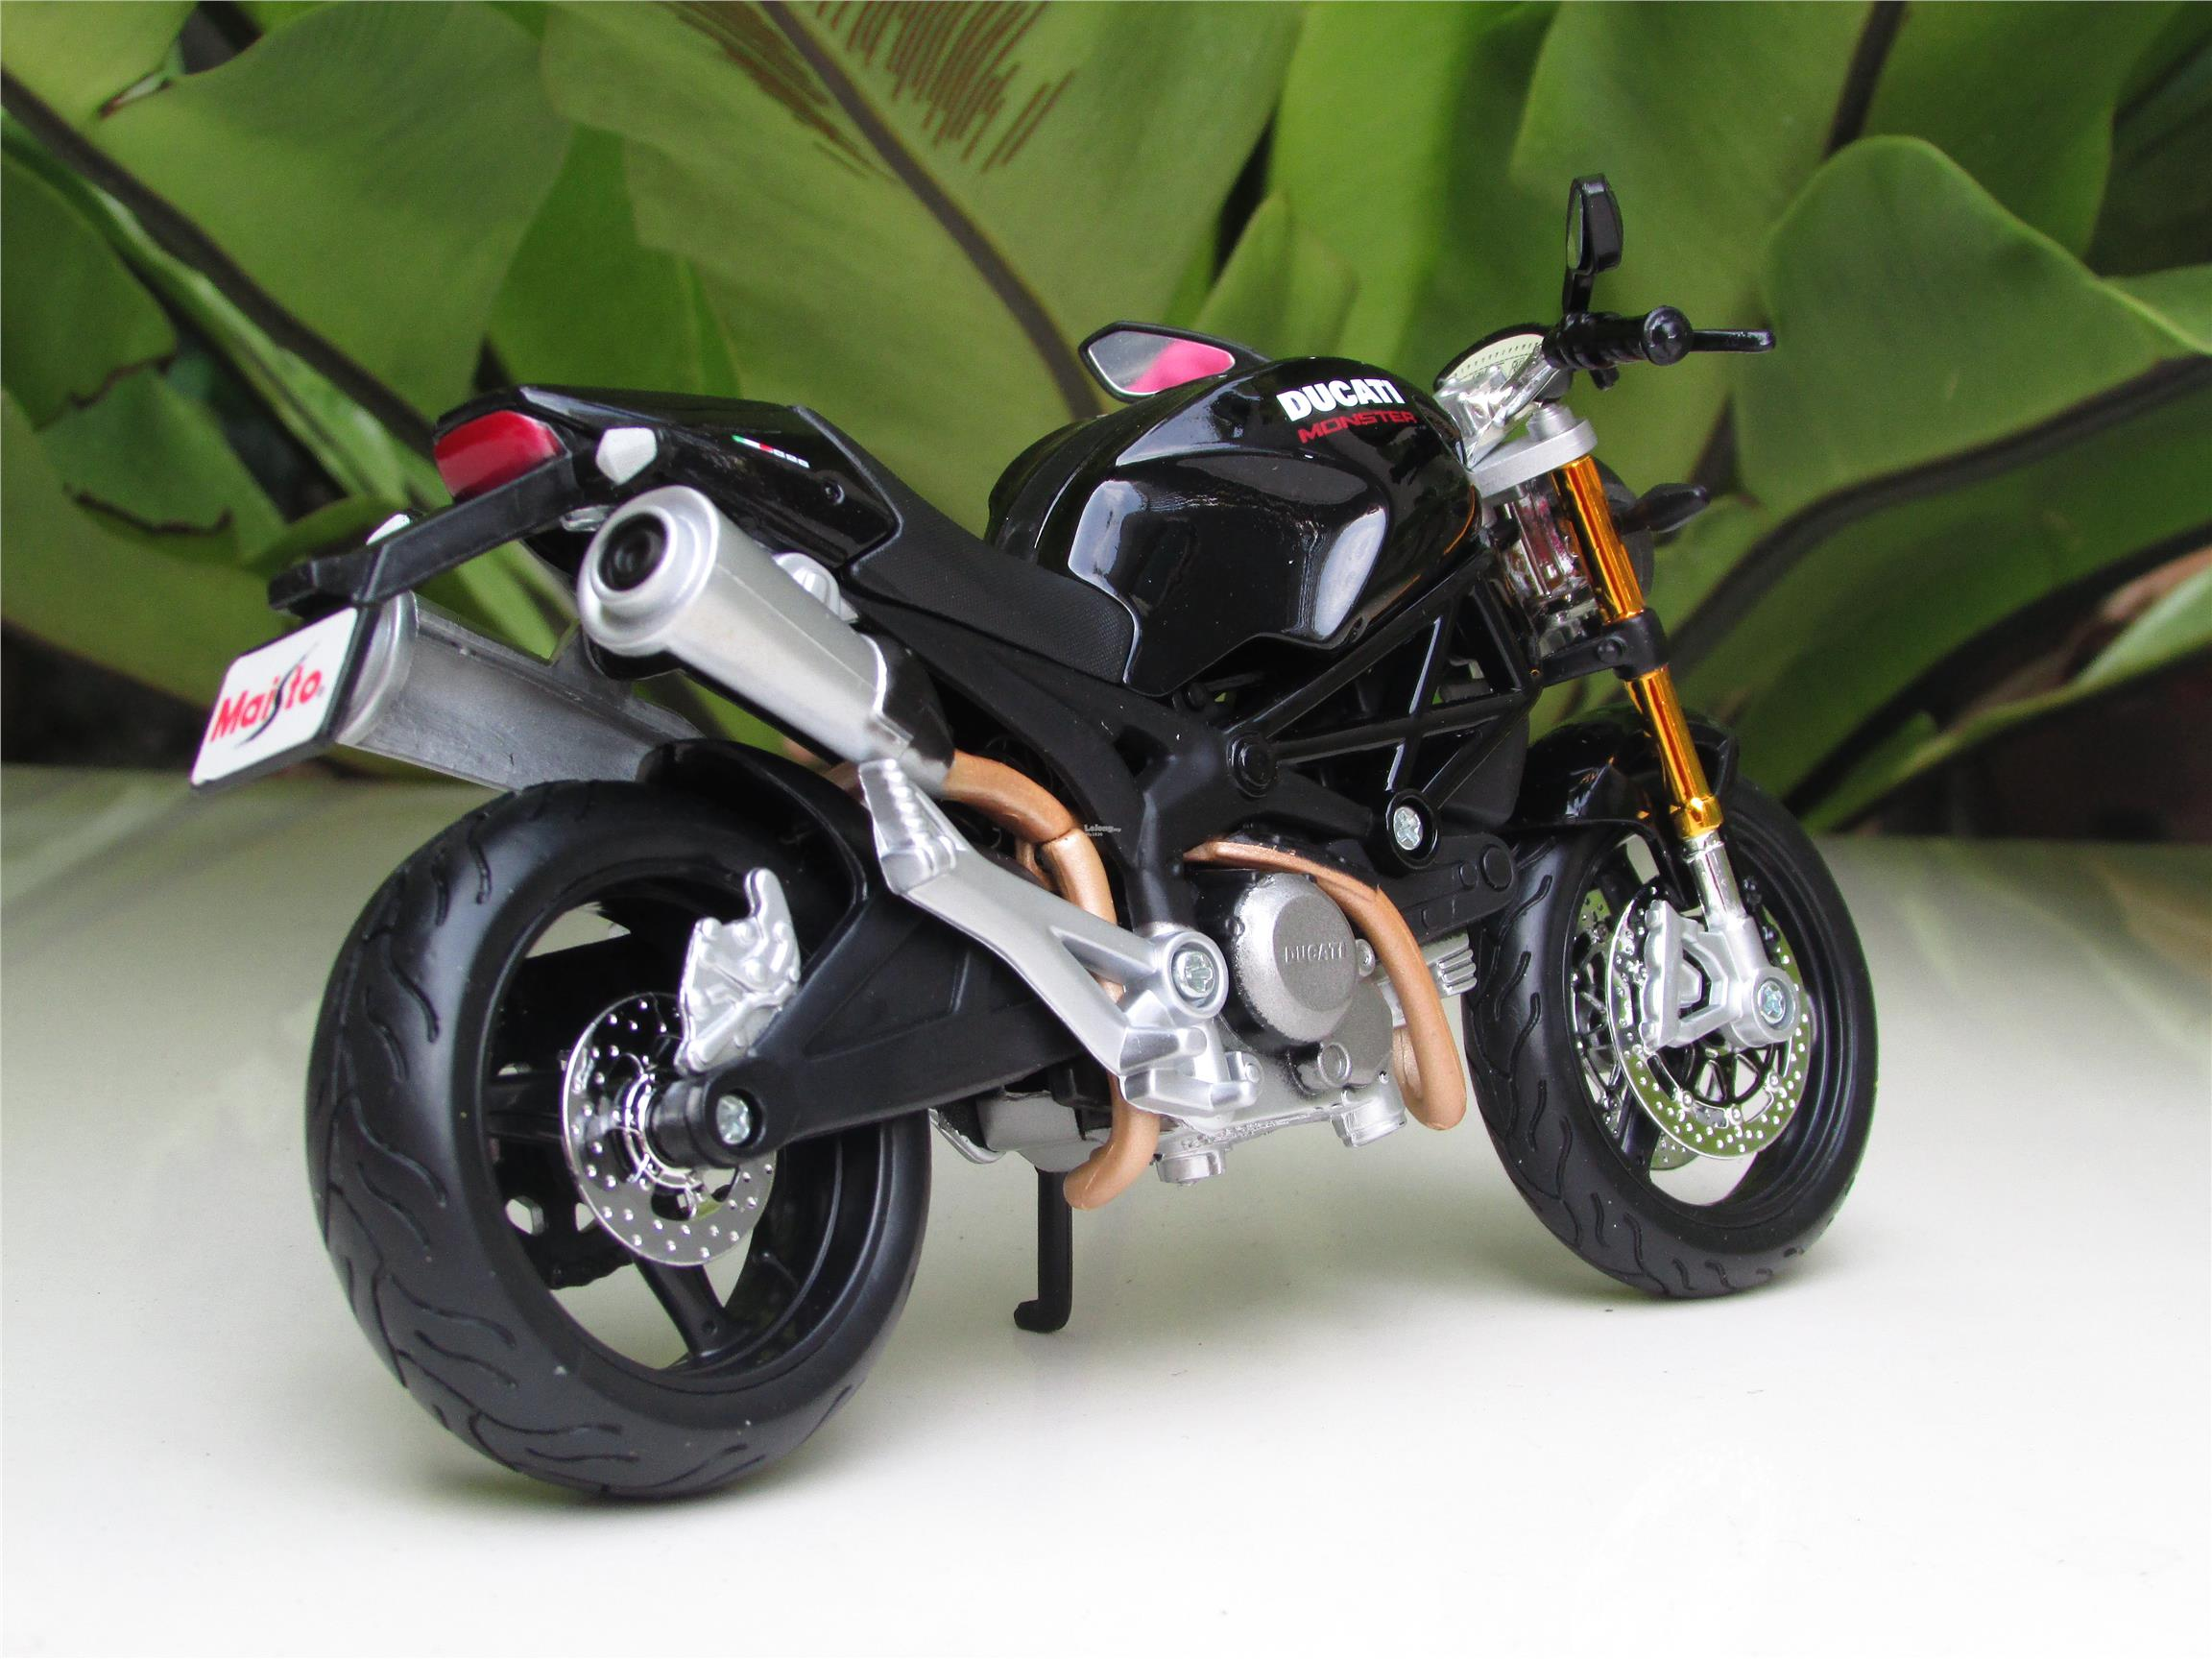 Maisto 1/12 Diecast Motorcycle DucatiMonster 696 BLACK